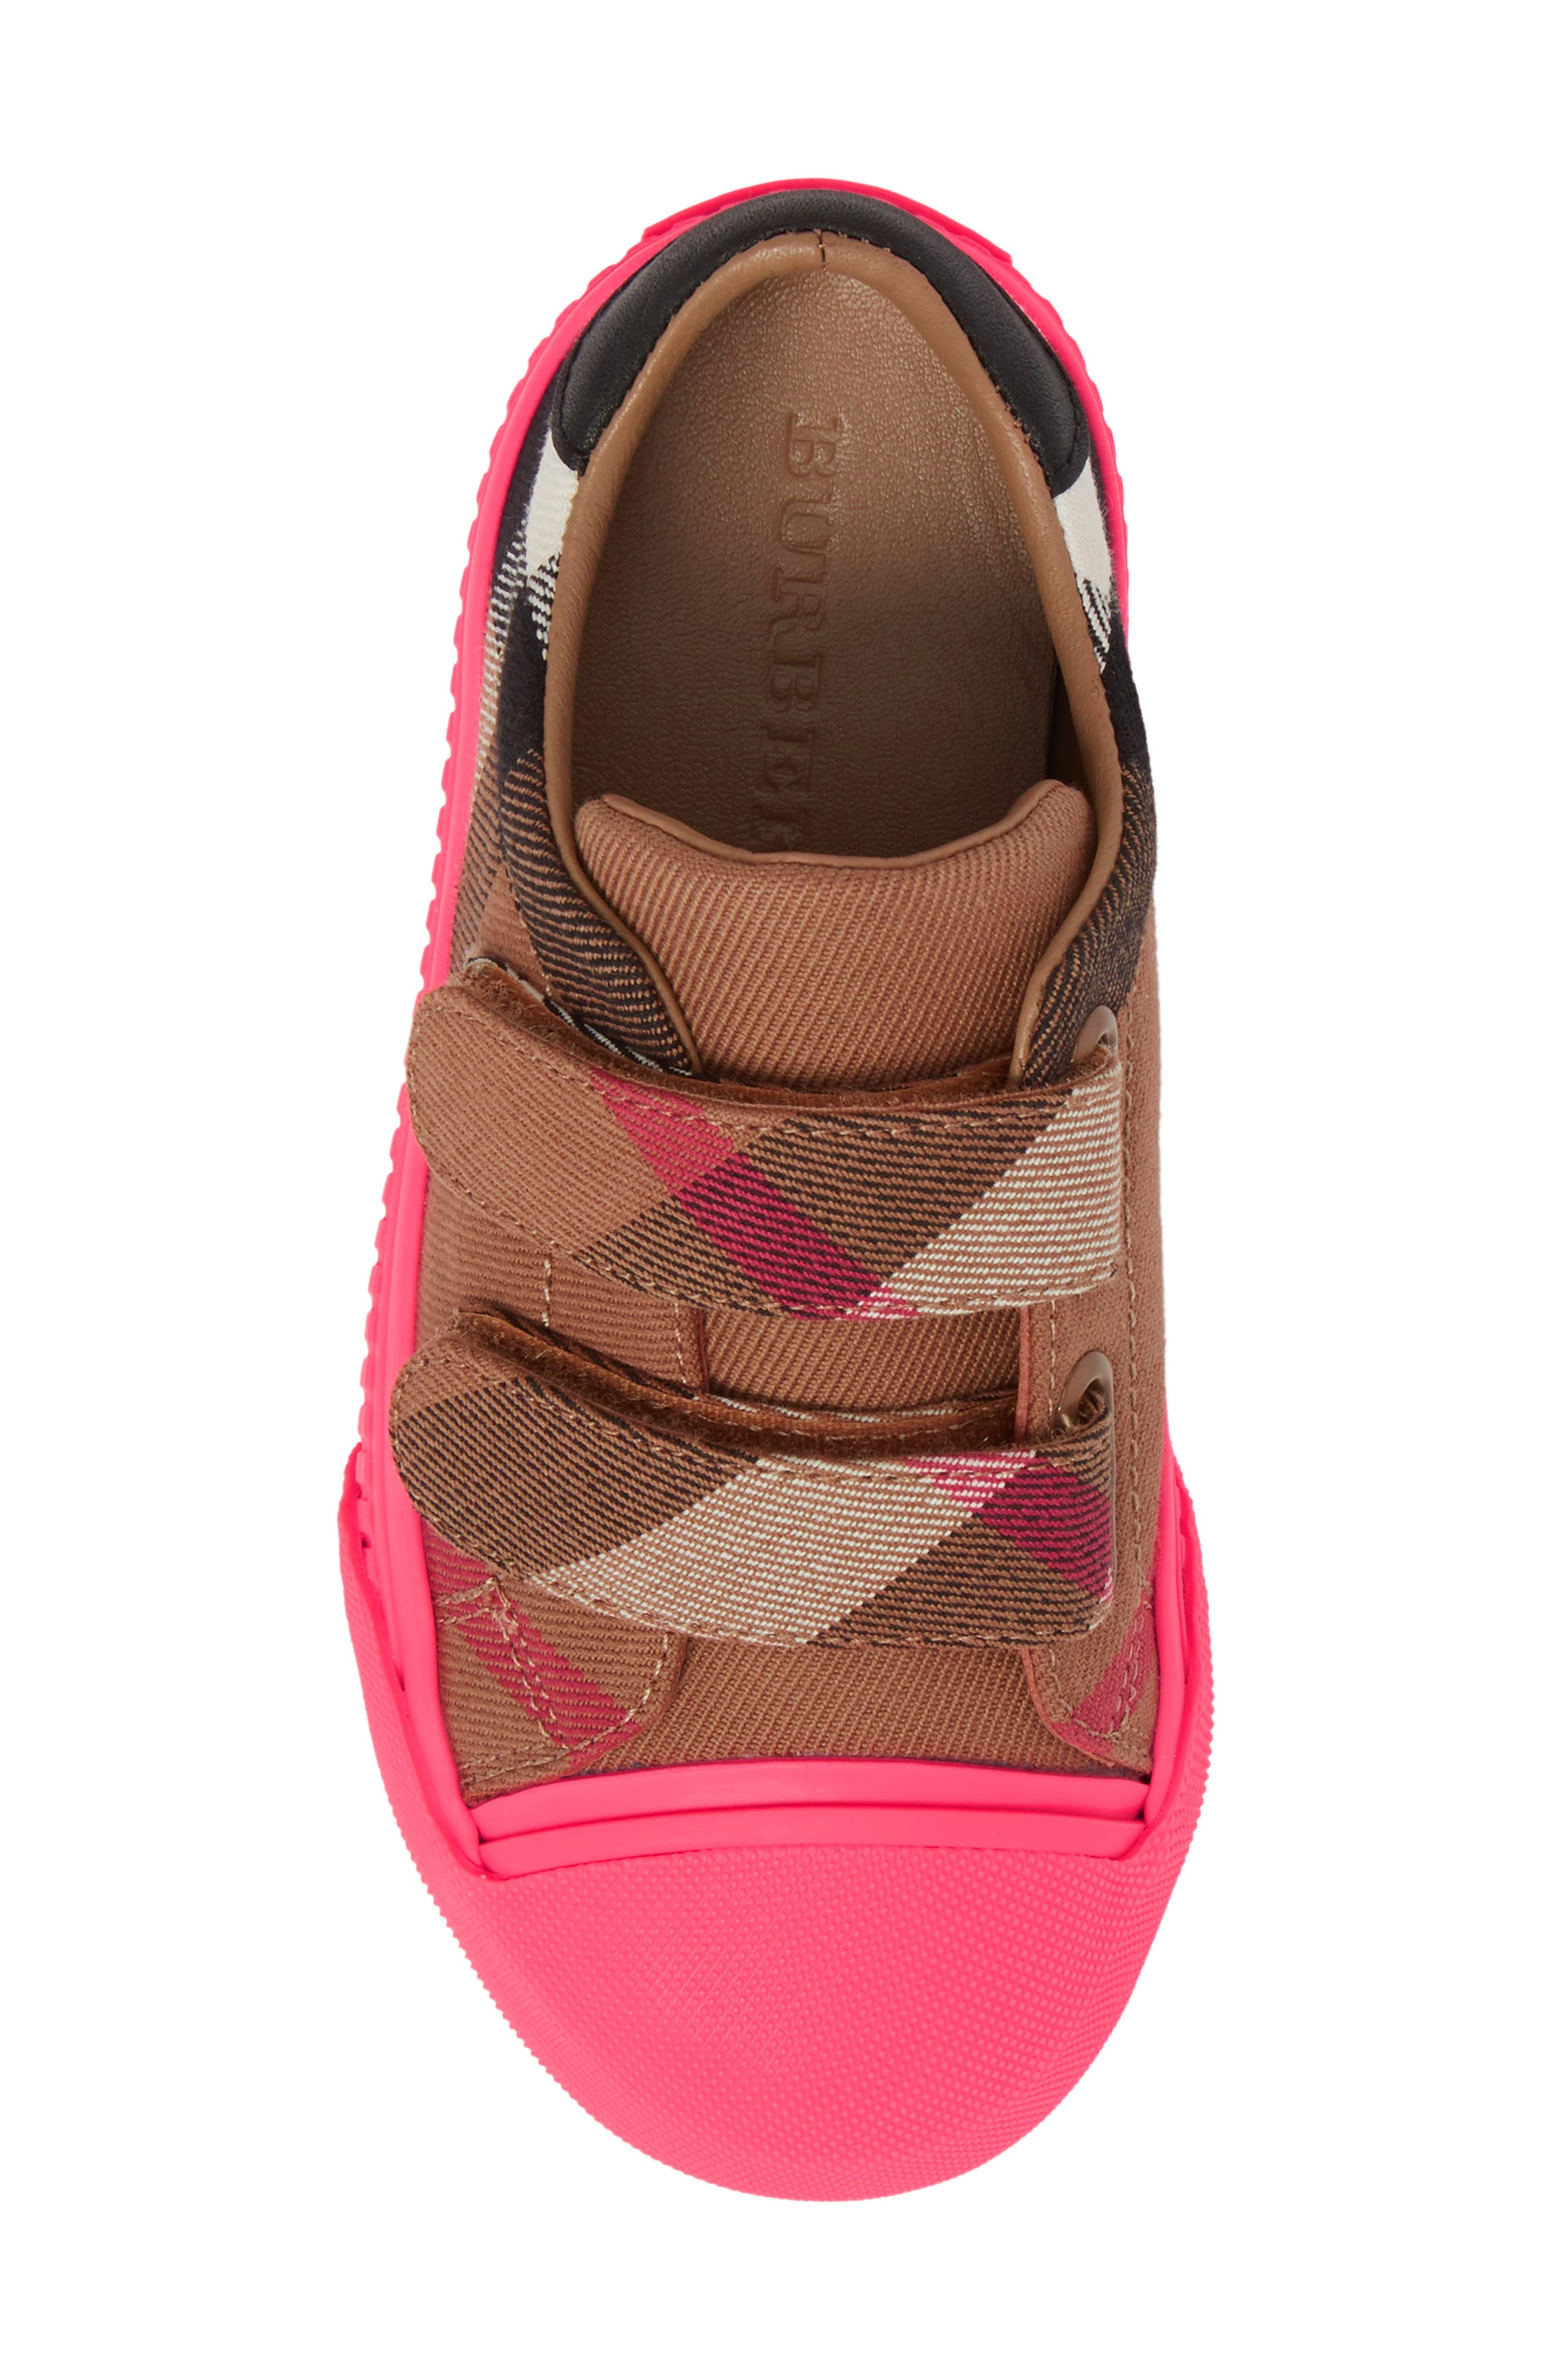 Belside Sneaker,                             Alternate thumbnail 5, color,                             671